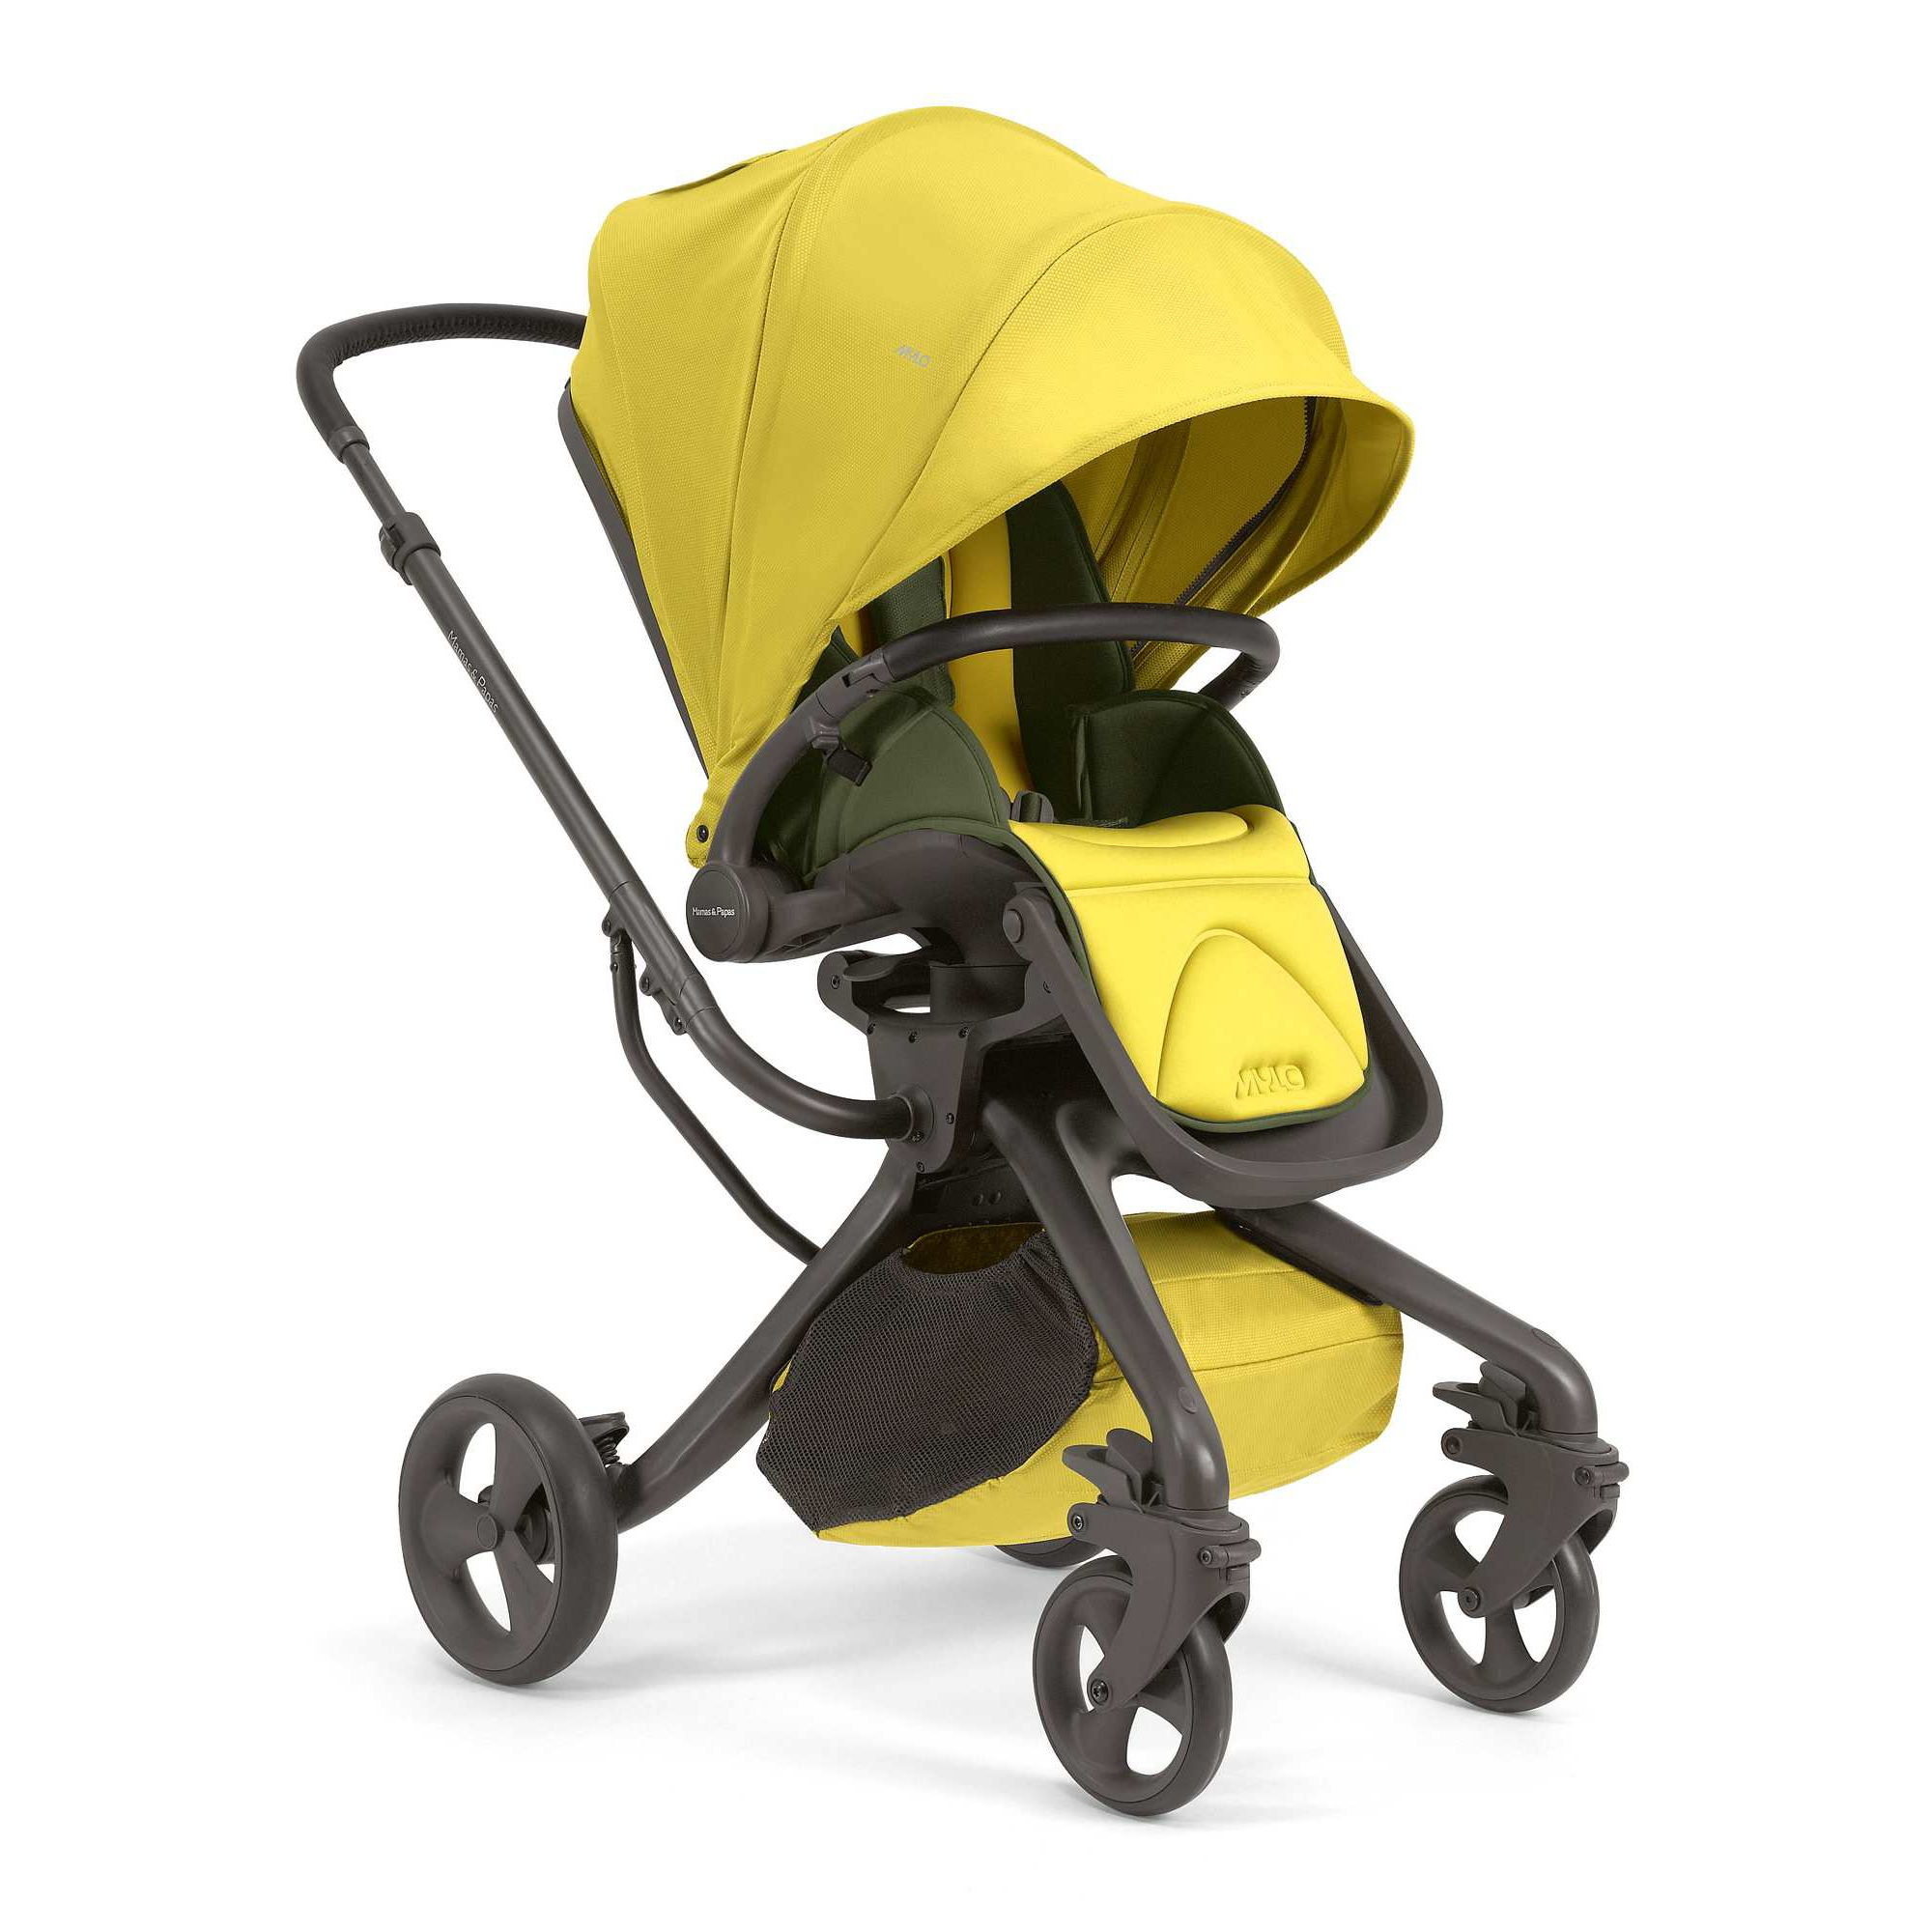 Mamas & Papas - Mylo Pushchair - Lime Jelly at Tesco Direct